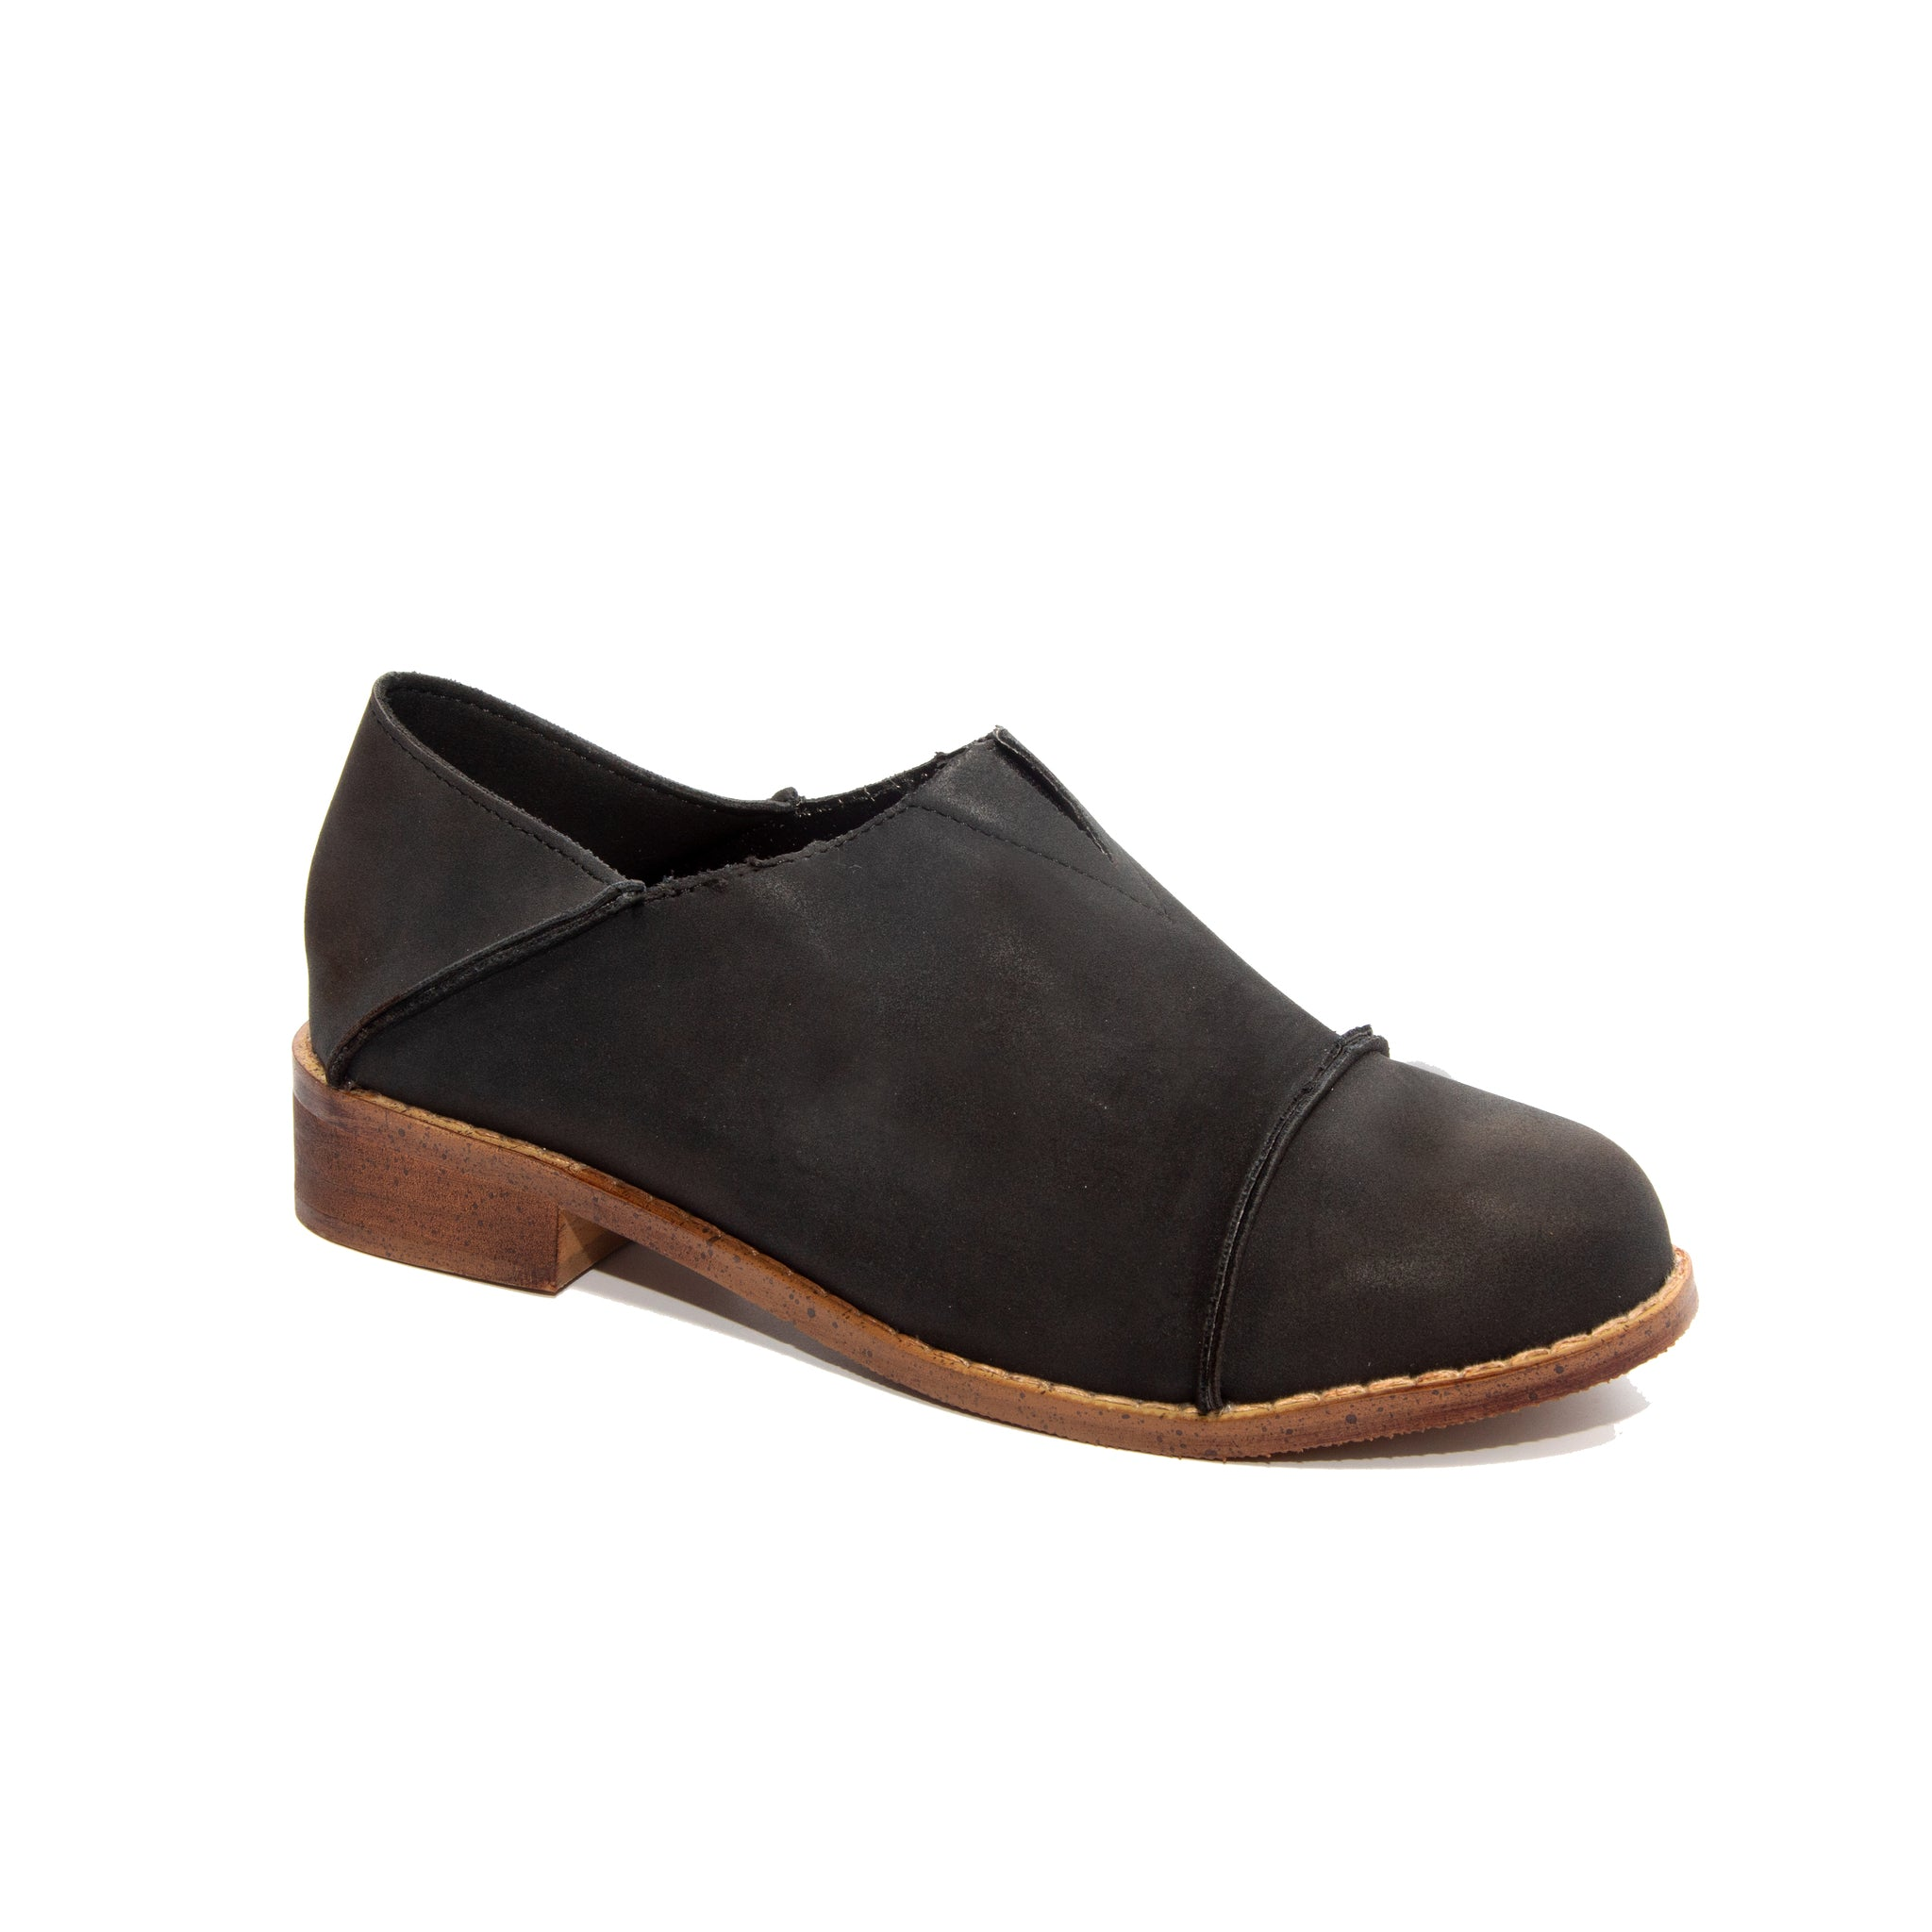 Diva by Dolce Nome | Slip-On Oxford Loafers in Black (main view)